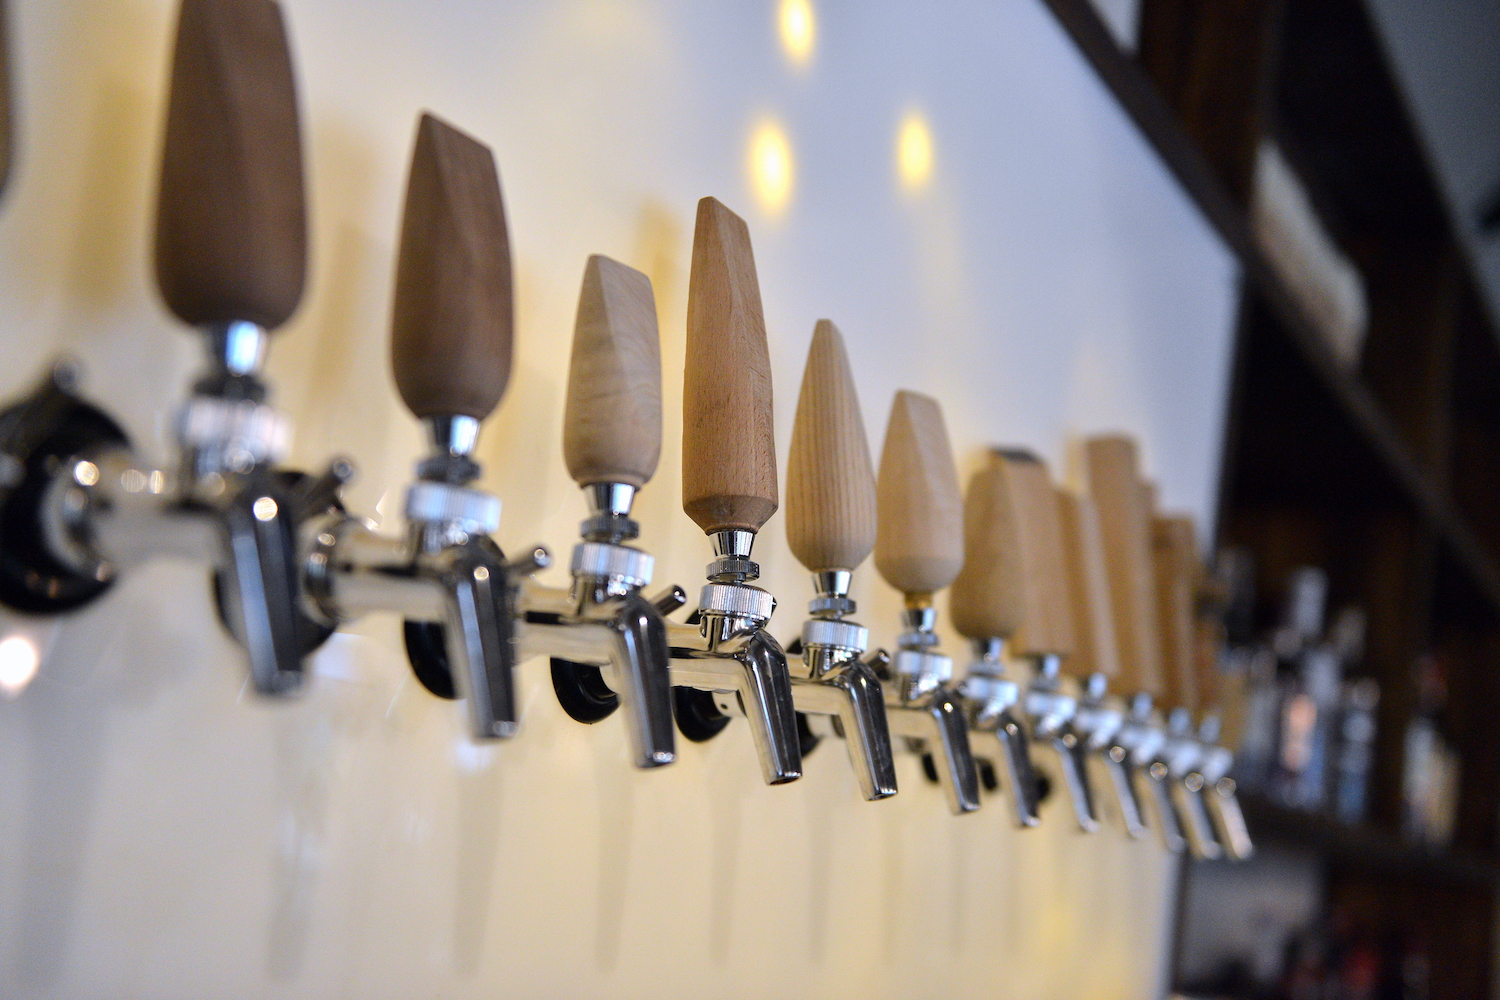 Photo of tap handles